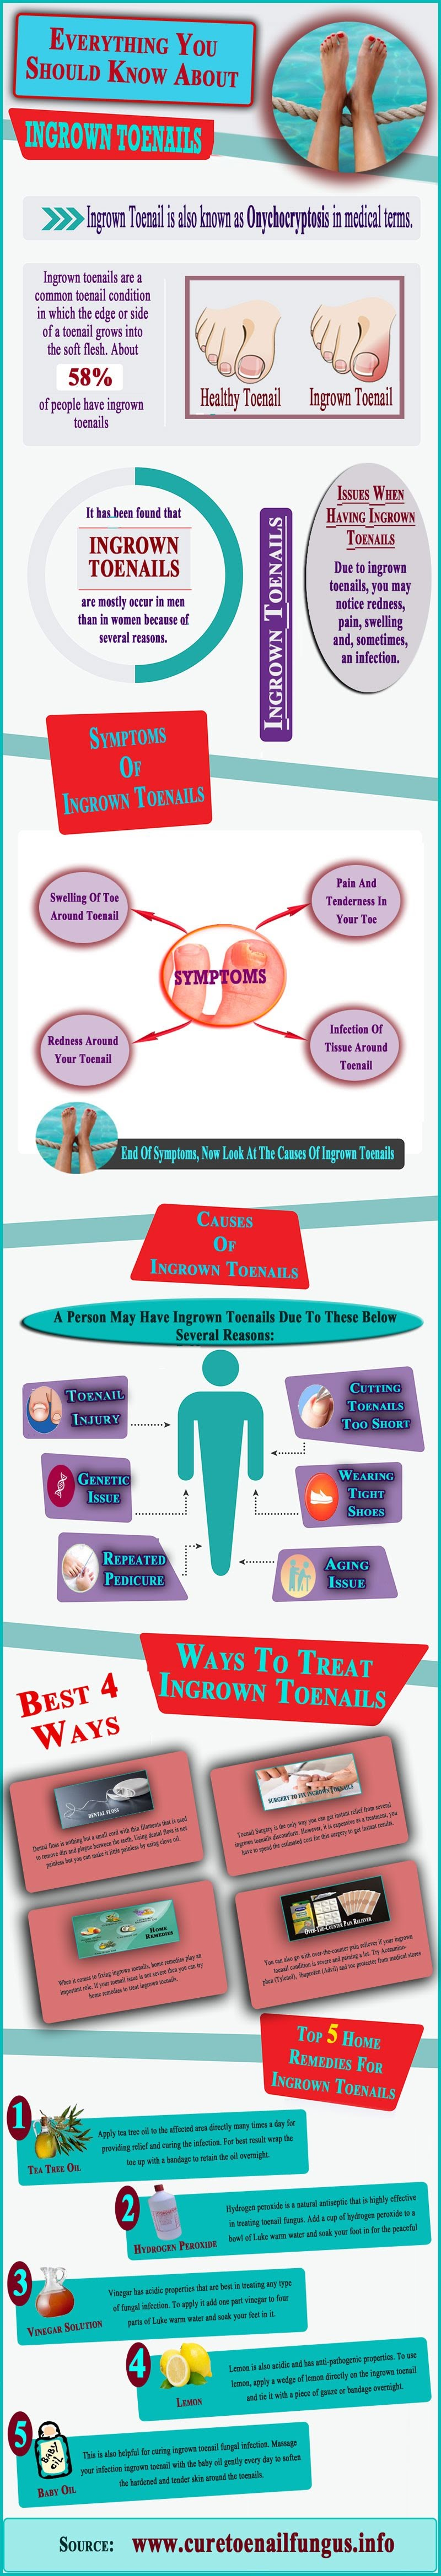 Everything You Should Know About Ingrown Toenails #Infographic